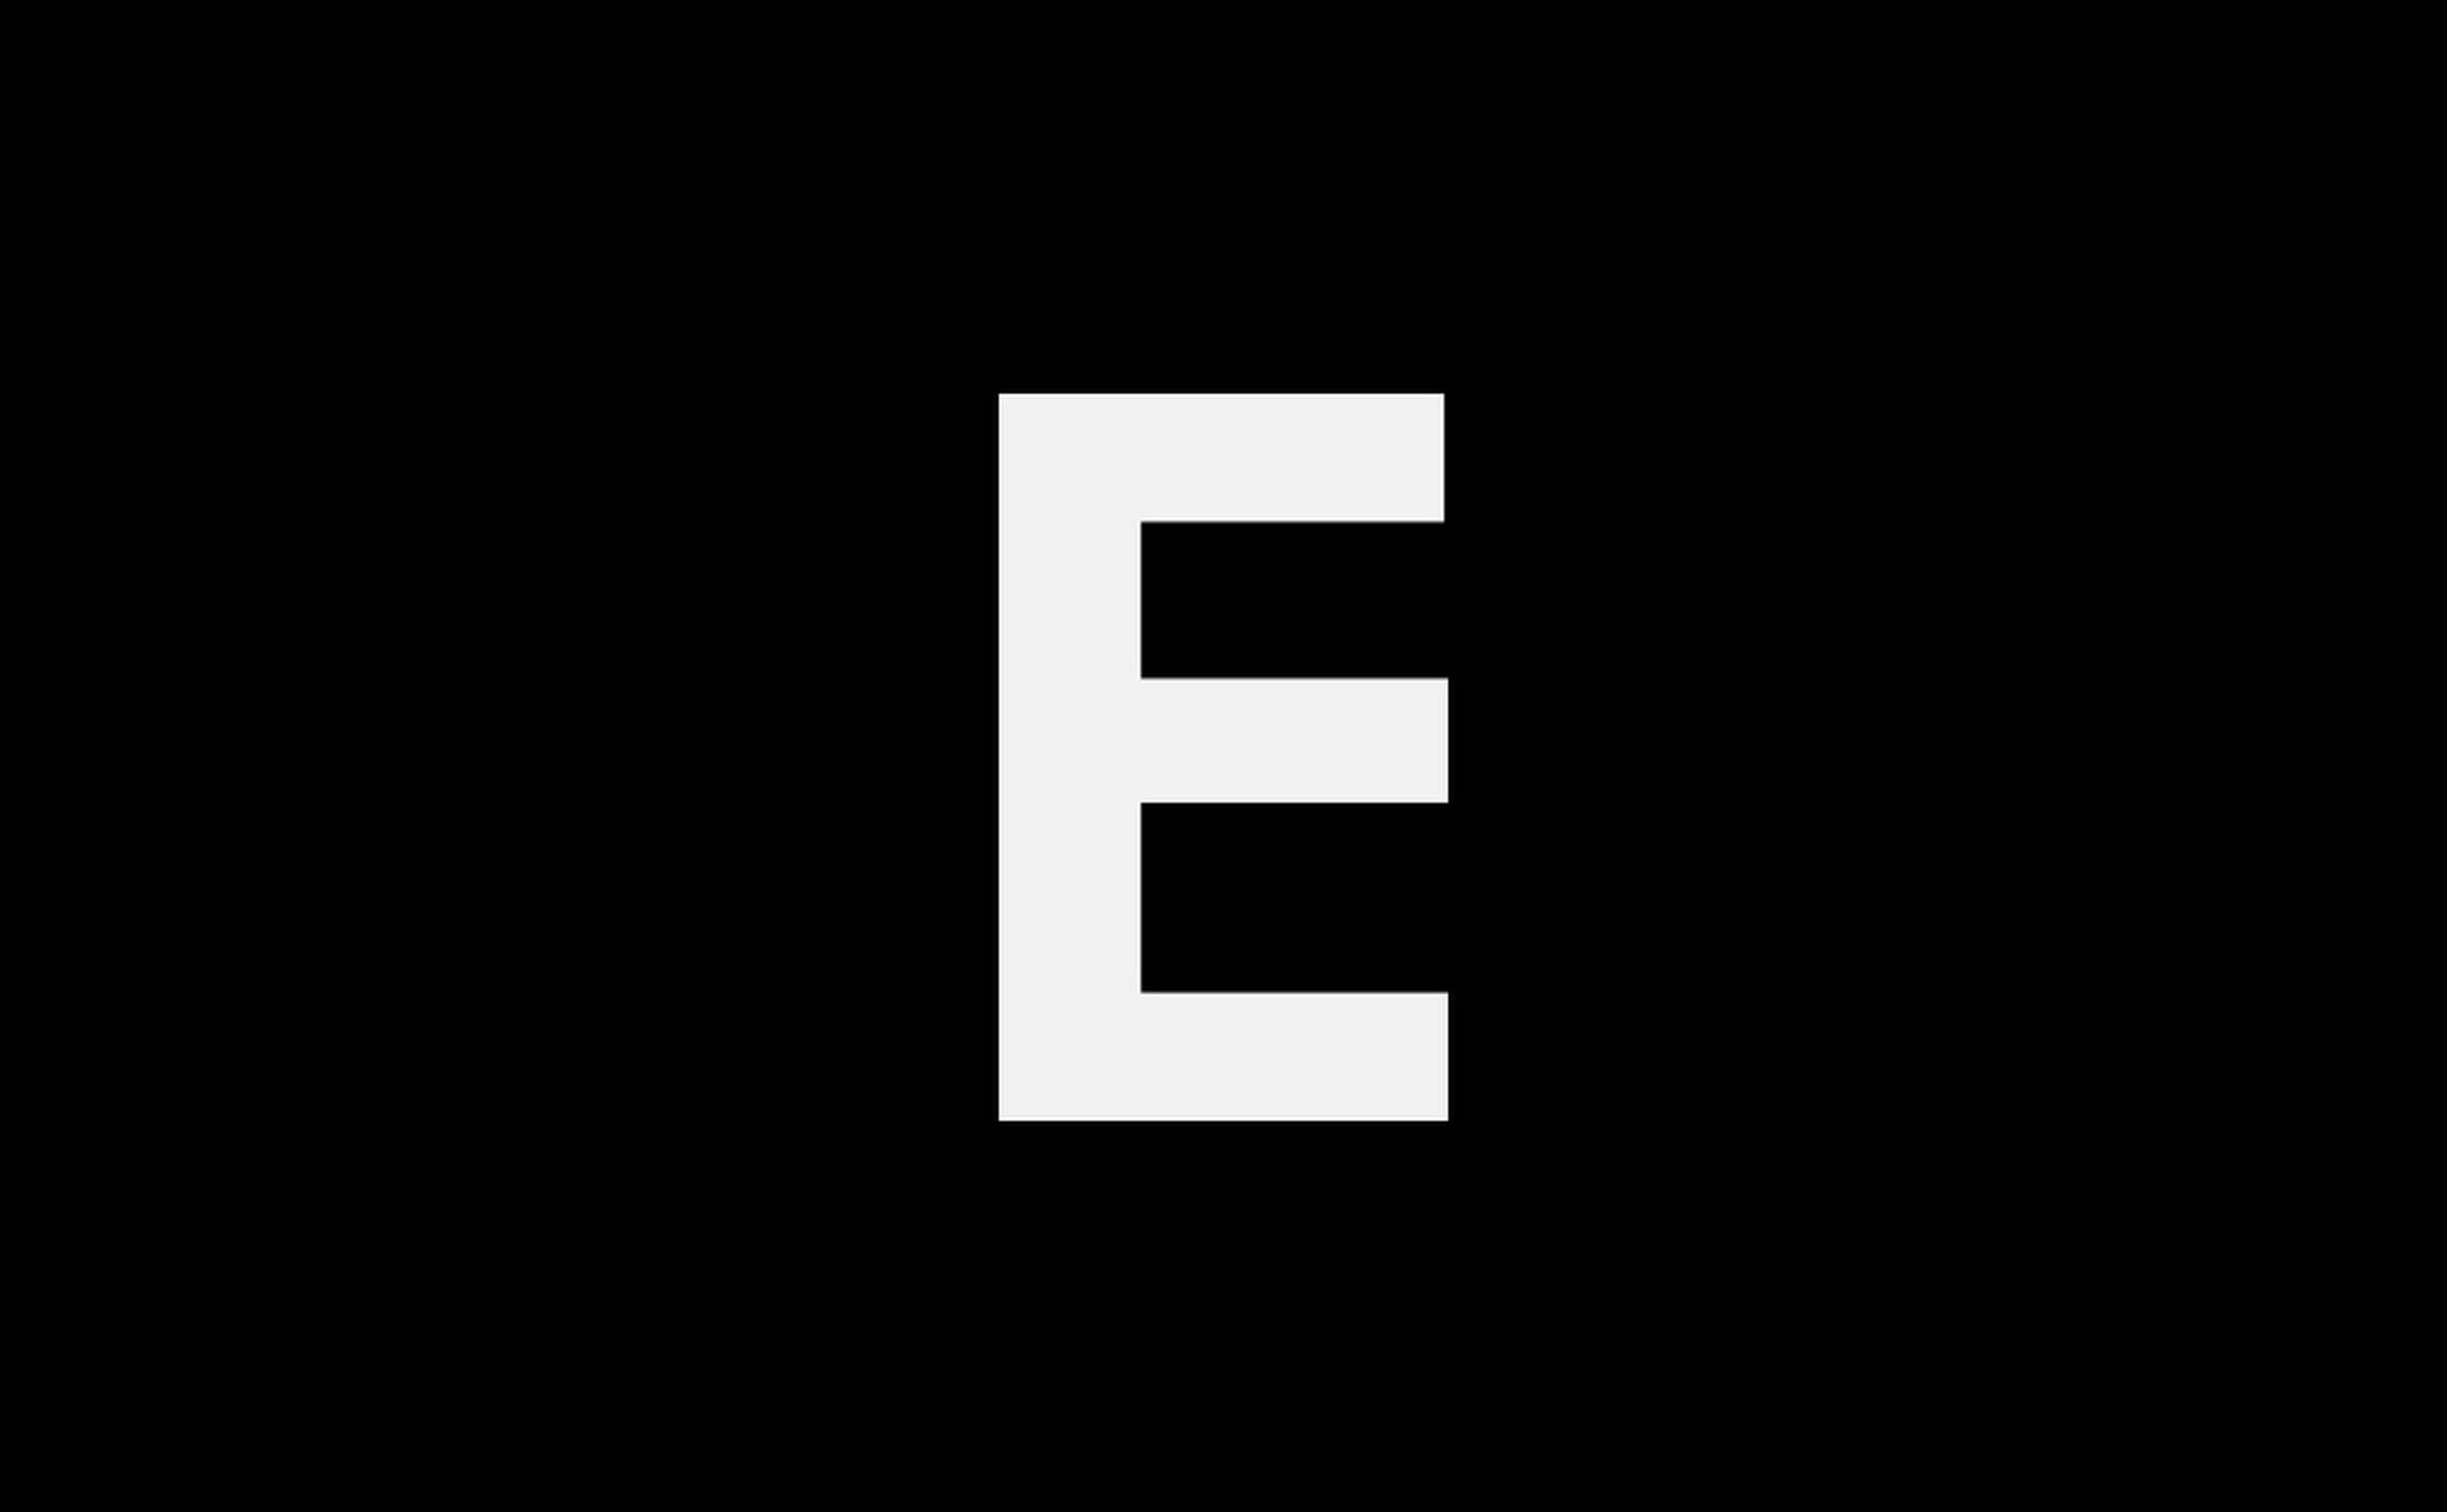 PANORAMIC VIEW OF ILLUMINATED CITY BUILDINGS AT SUNSET